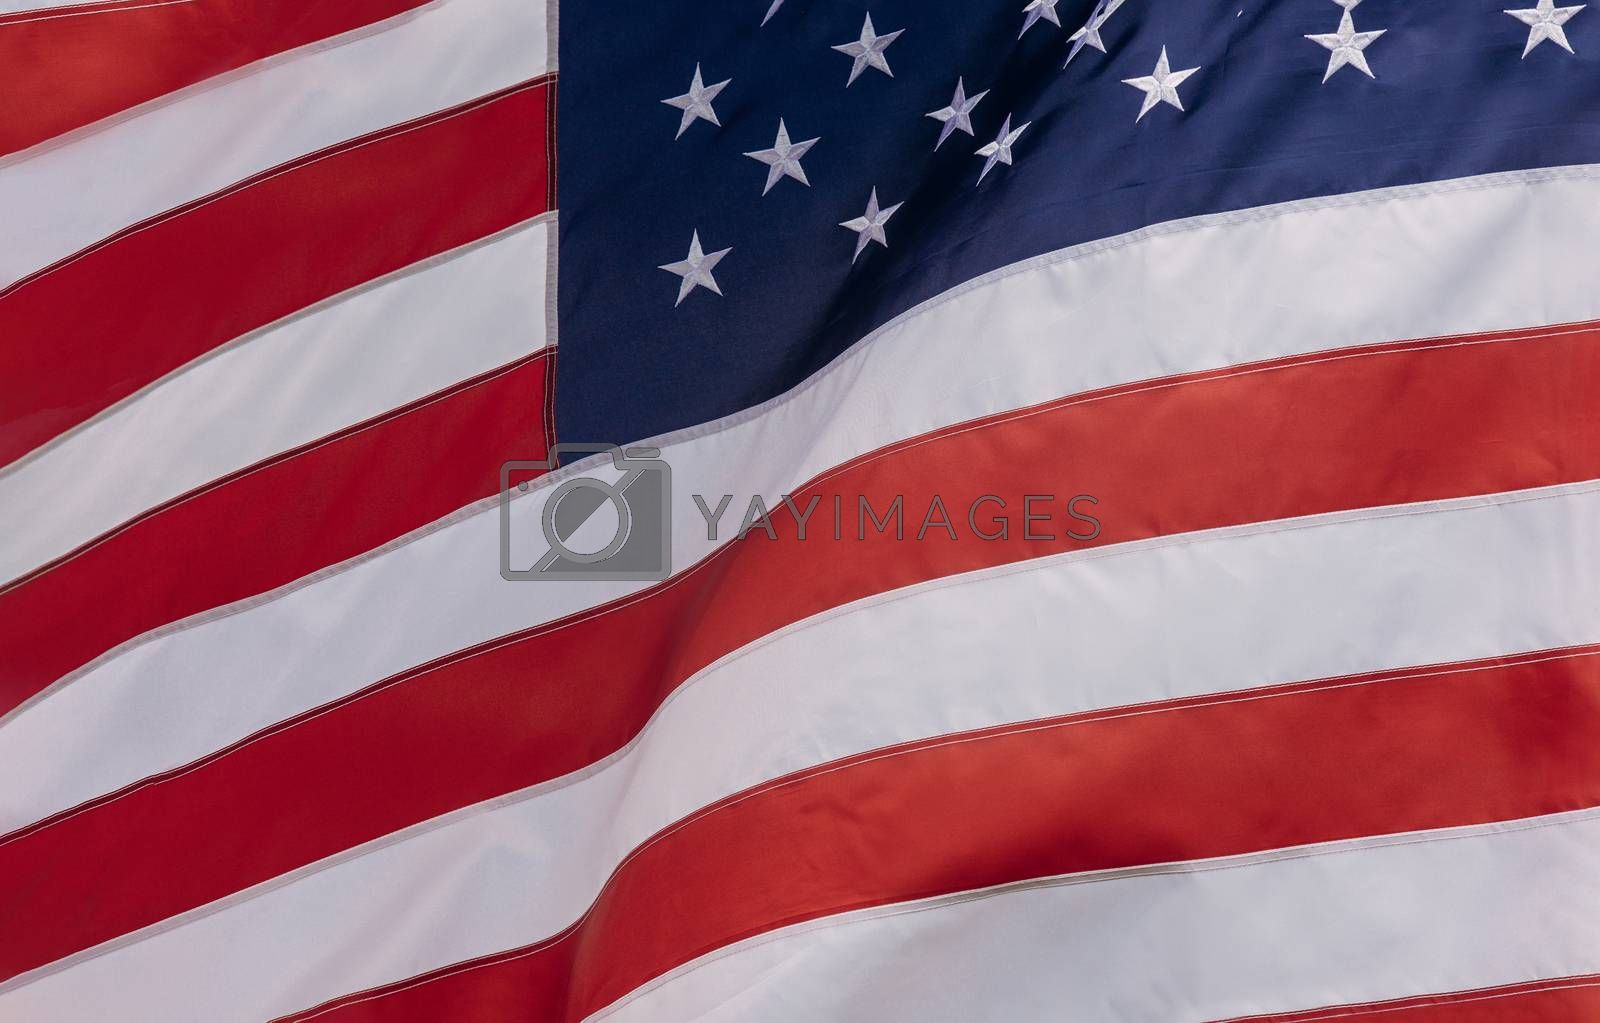 Royalty free image of American Flag flowing with waving in the wind by ungvar